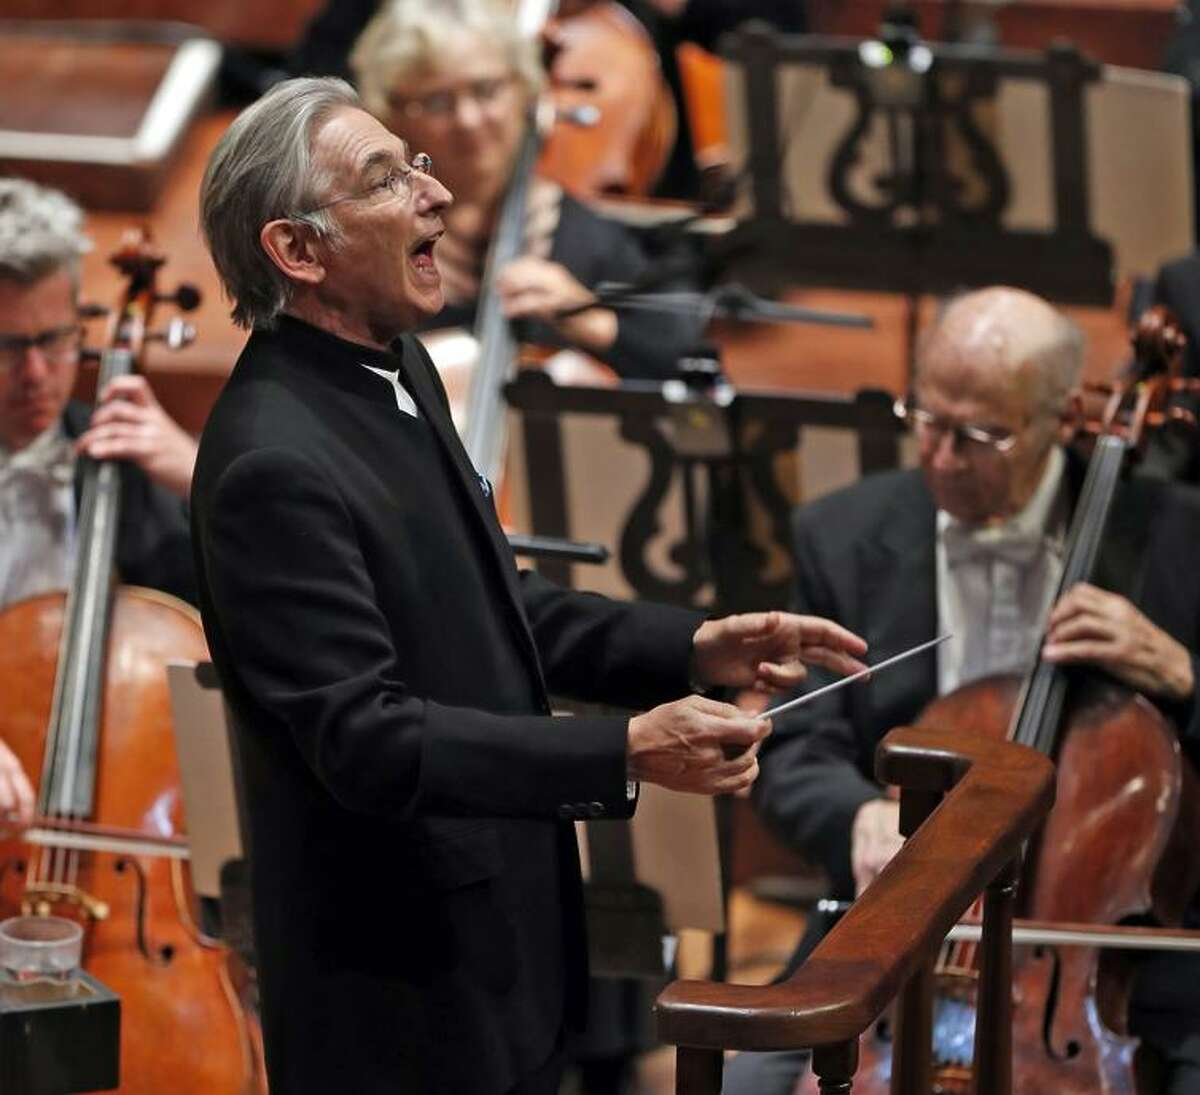 Conductor Michael Tilson Thomas opened the season with Bernstein's